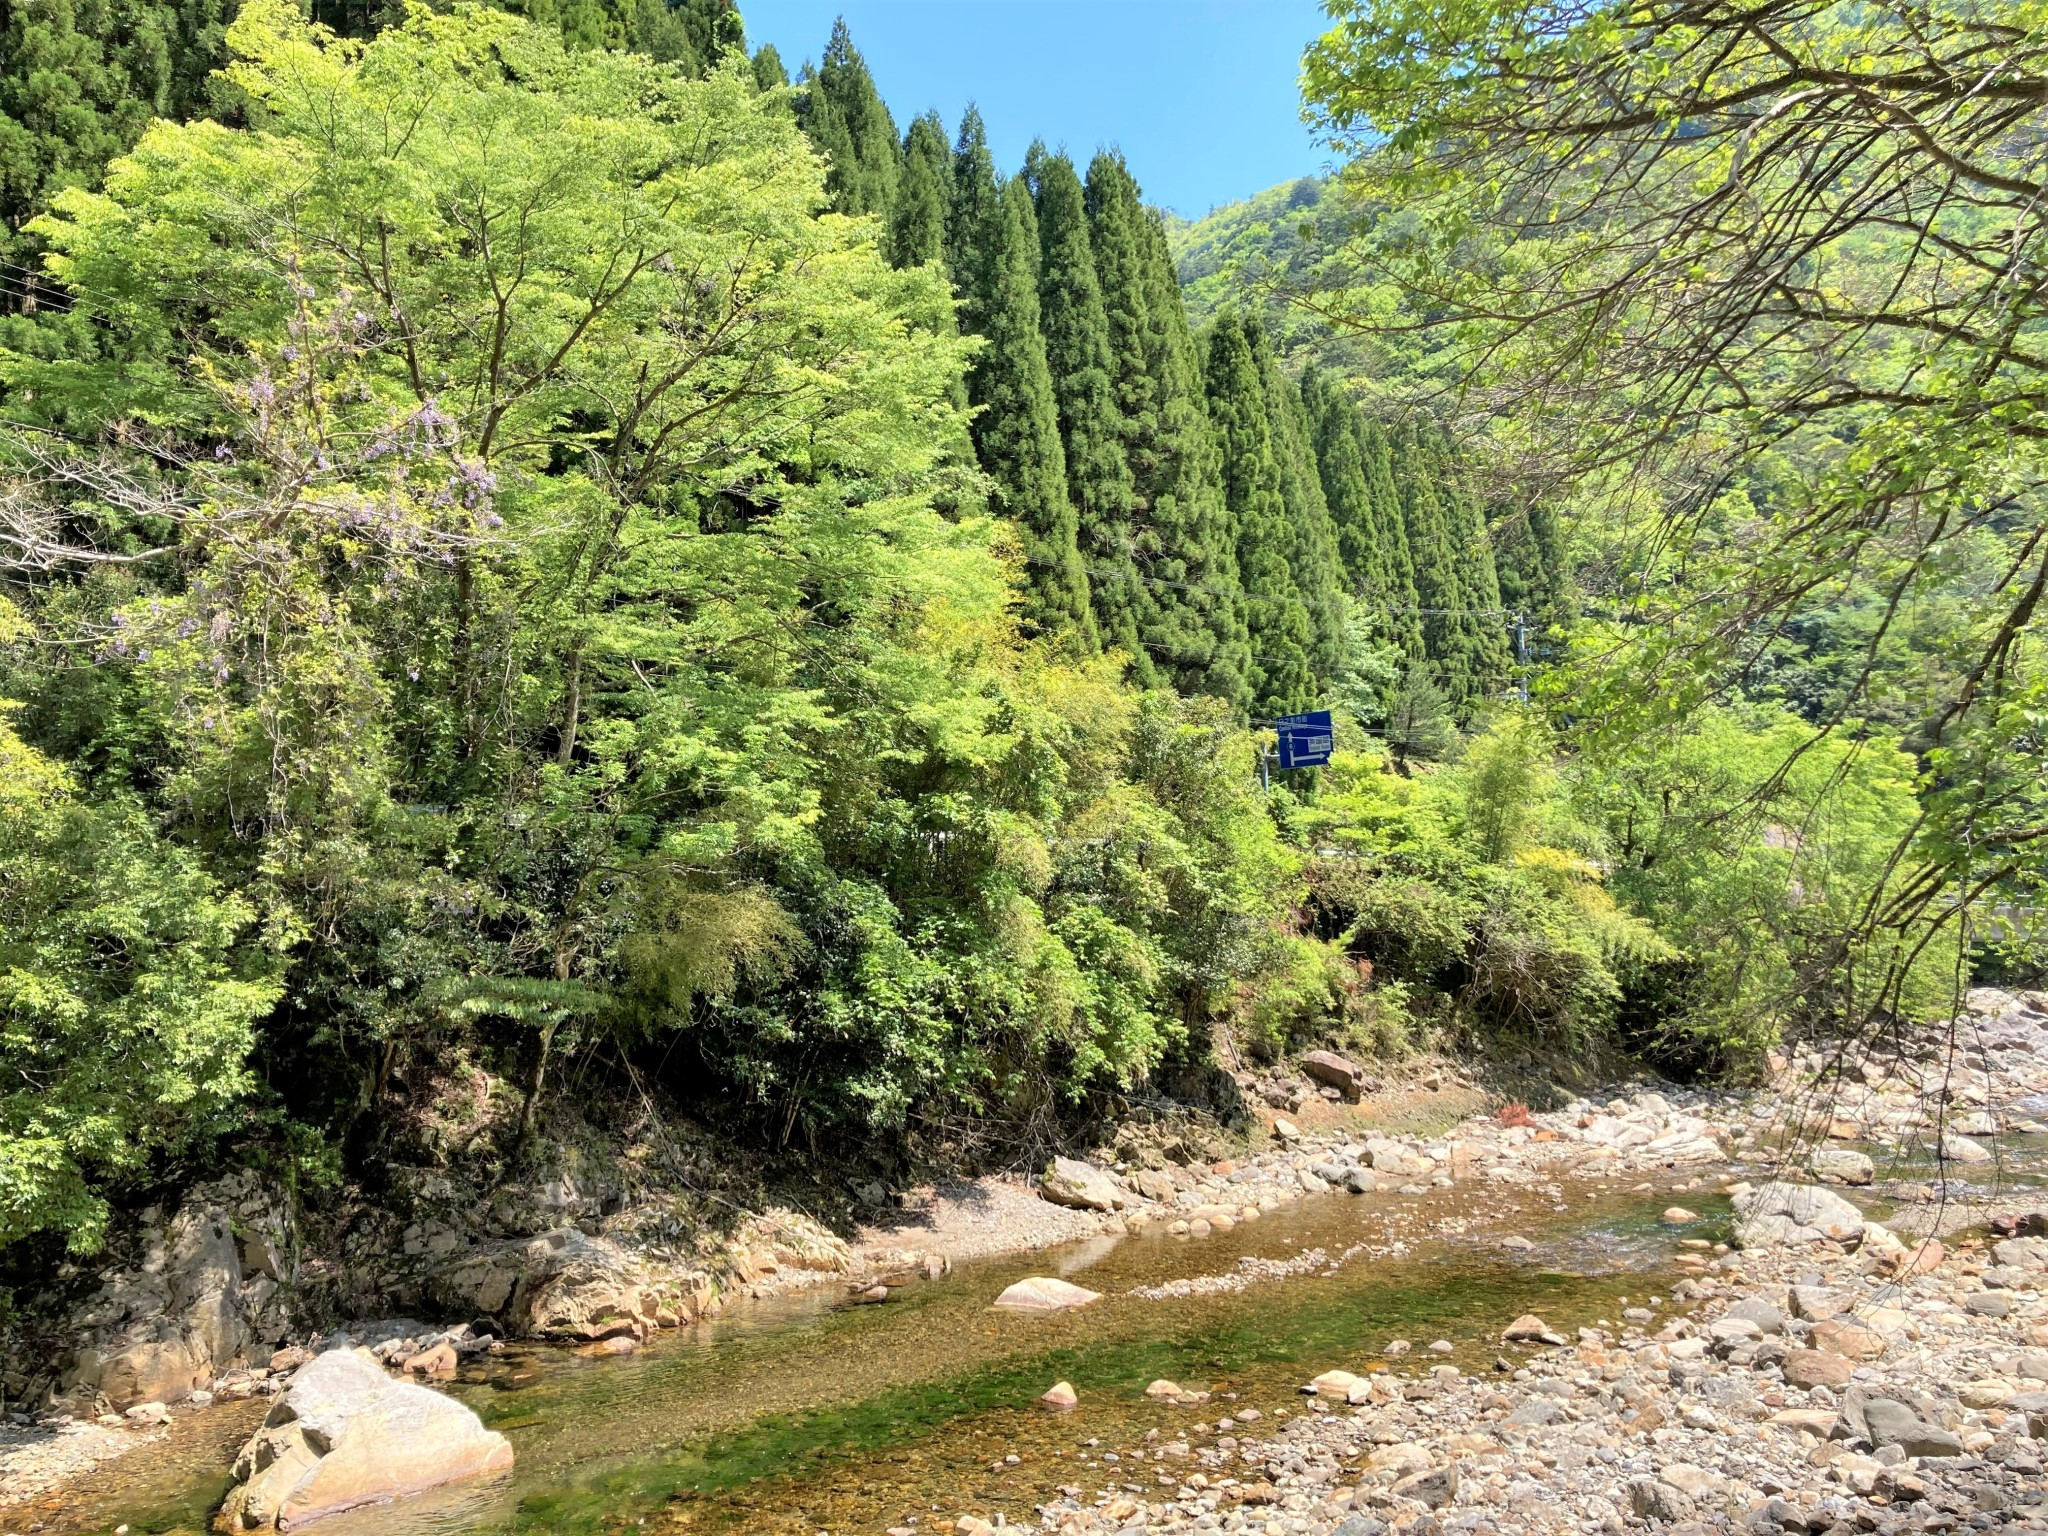 A tranquil stream in a rocky valley filled with bright green trees on a fine day in Kyushu, Japan.